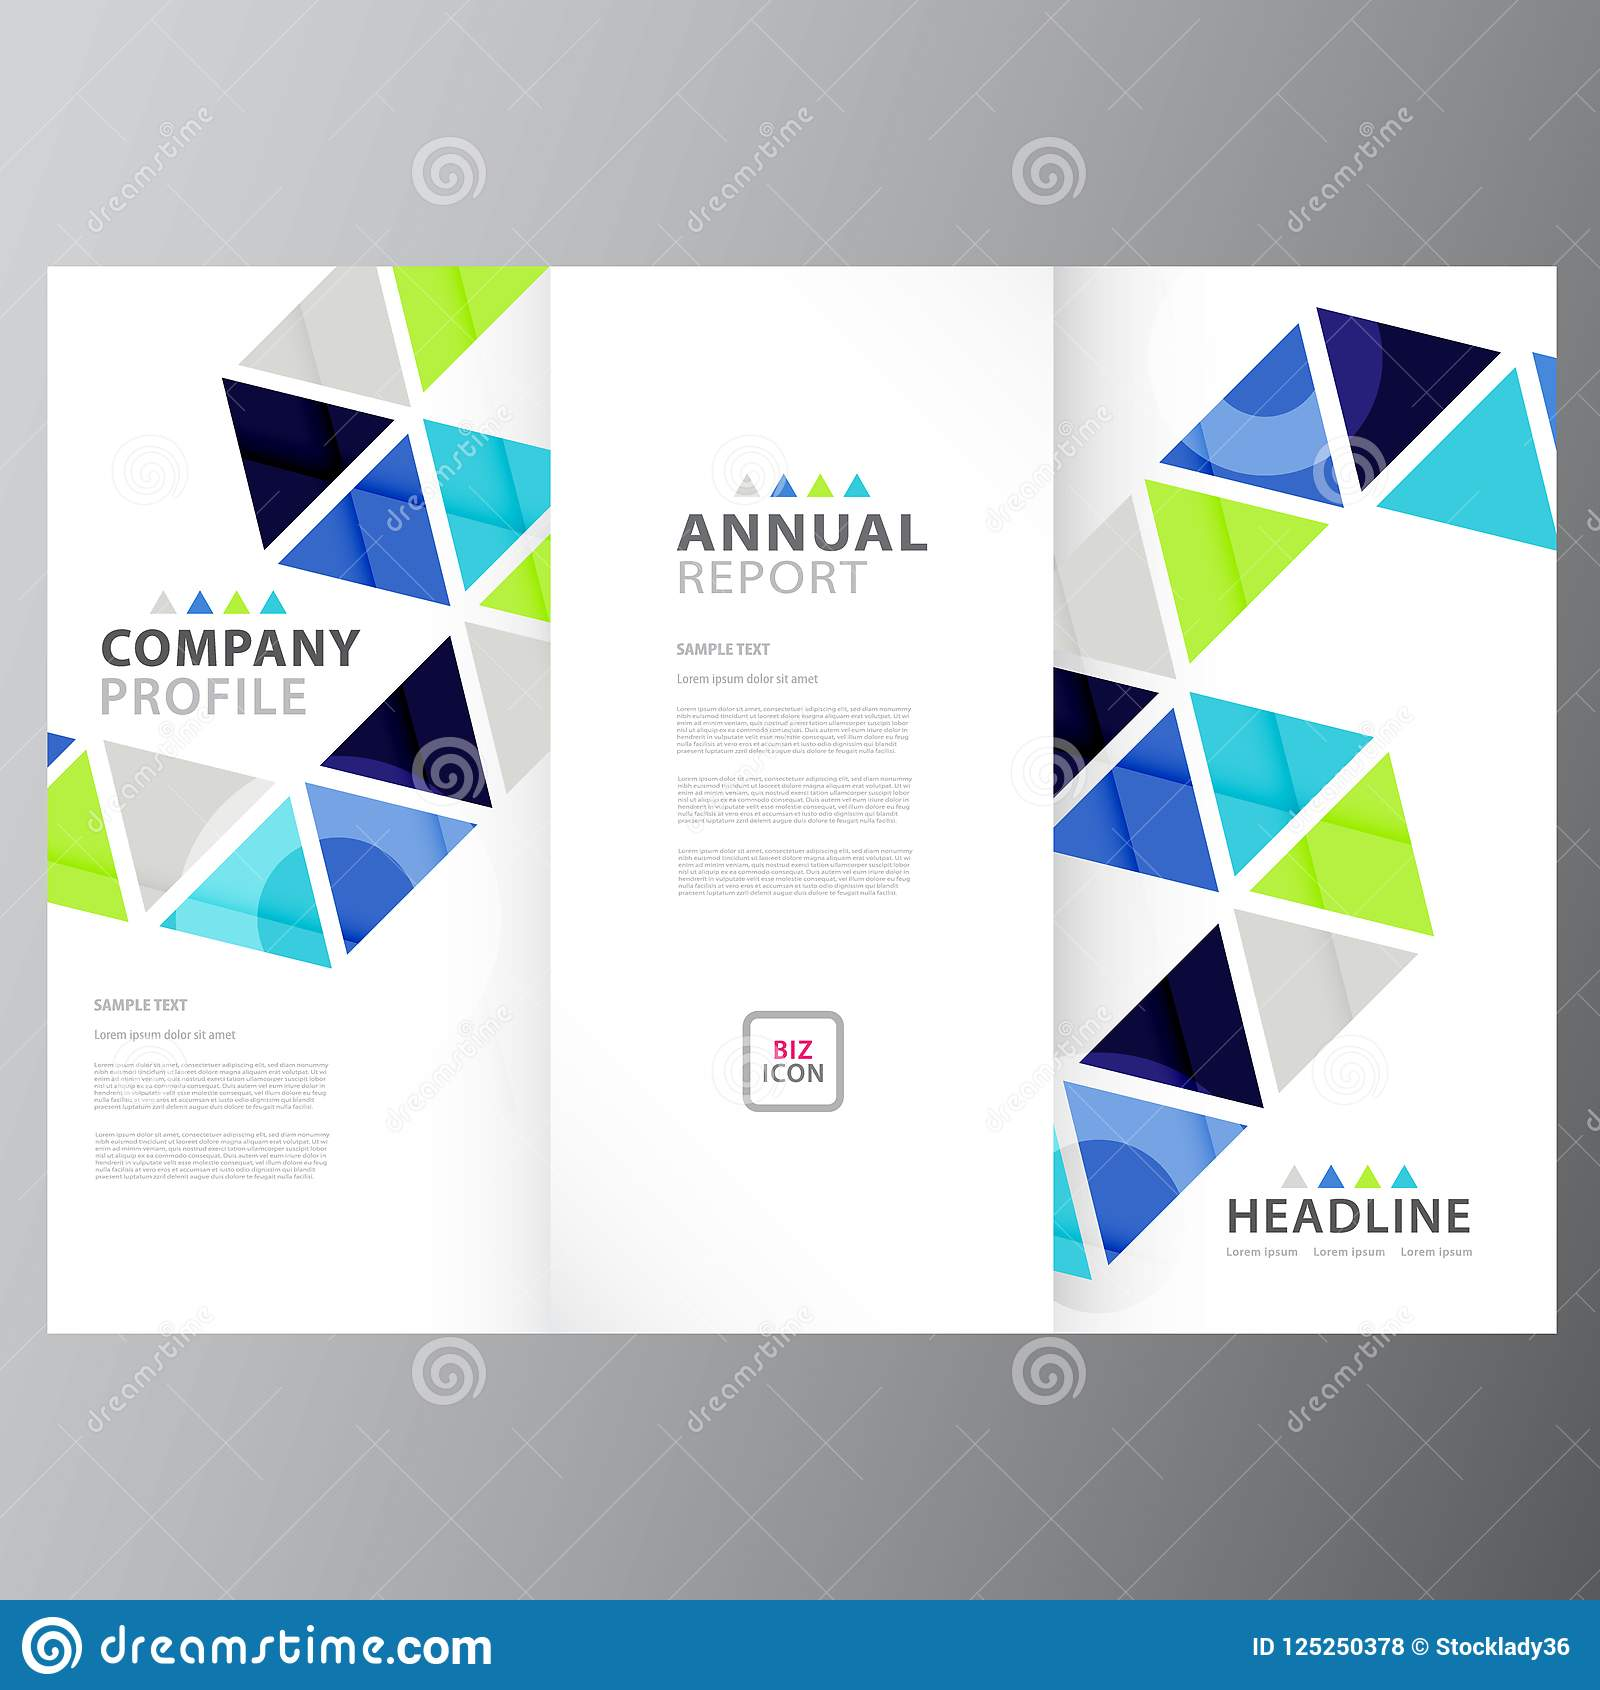 Annual business report colorful template stock vector illustration download annual business report colorful template stock vector illustration of element book 125250378 friedricerecipe Gallery